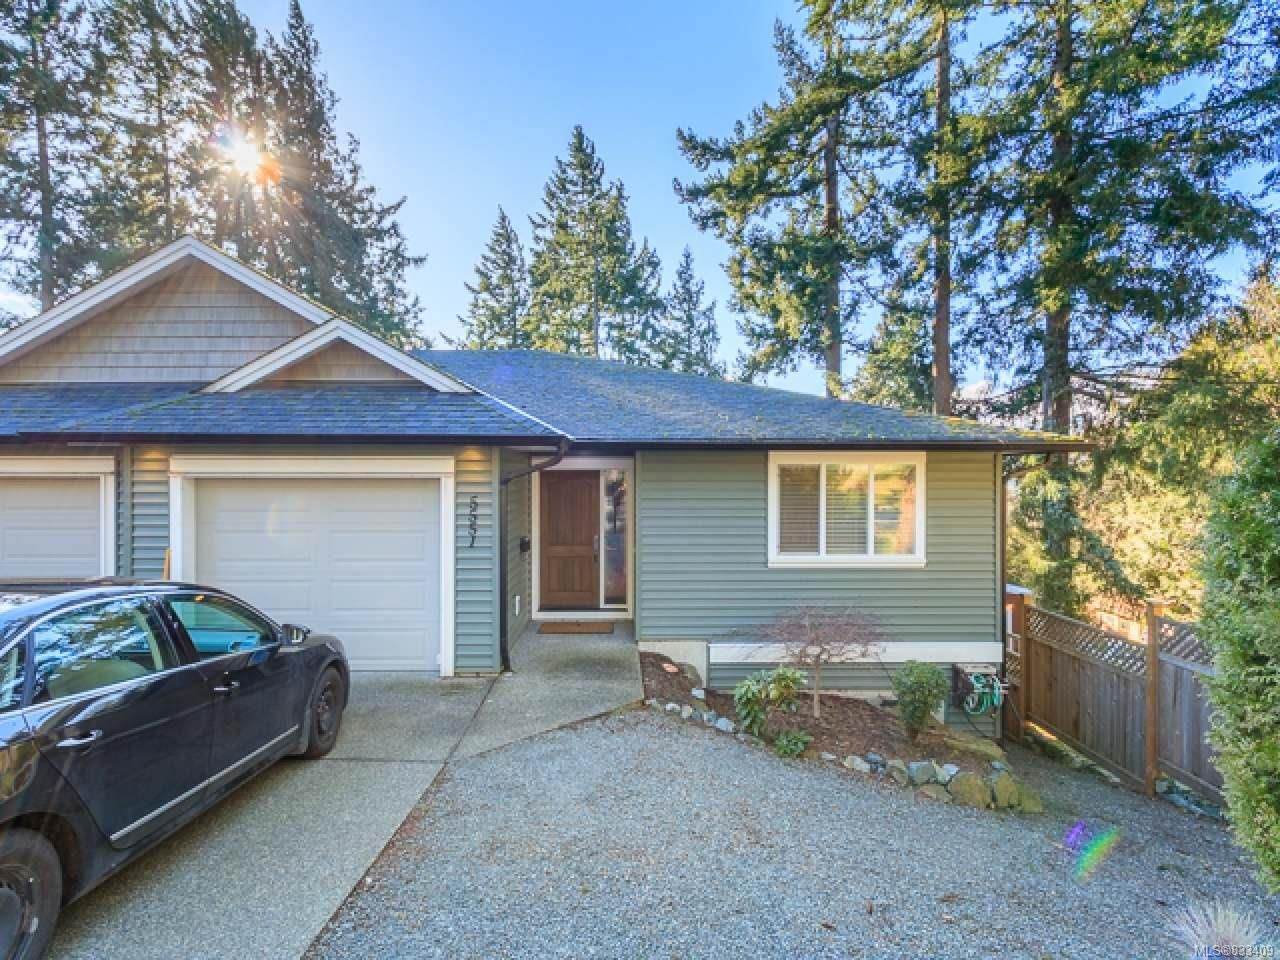 Main Photo: 5551 Big Bear Ridge in NANAIMO: Na Pleasant Valley Half Duplex for sale (Nanaimo)  : MLS®# 833409